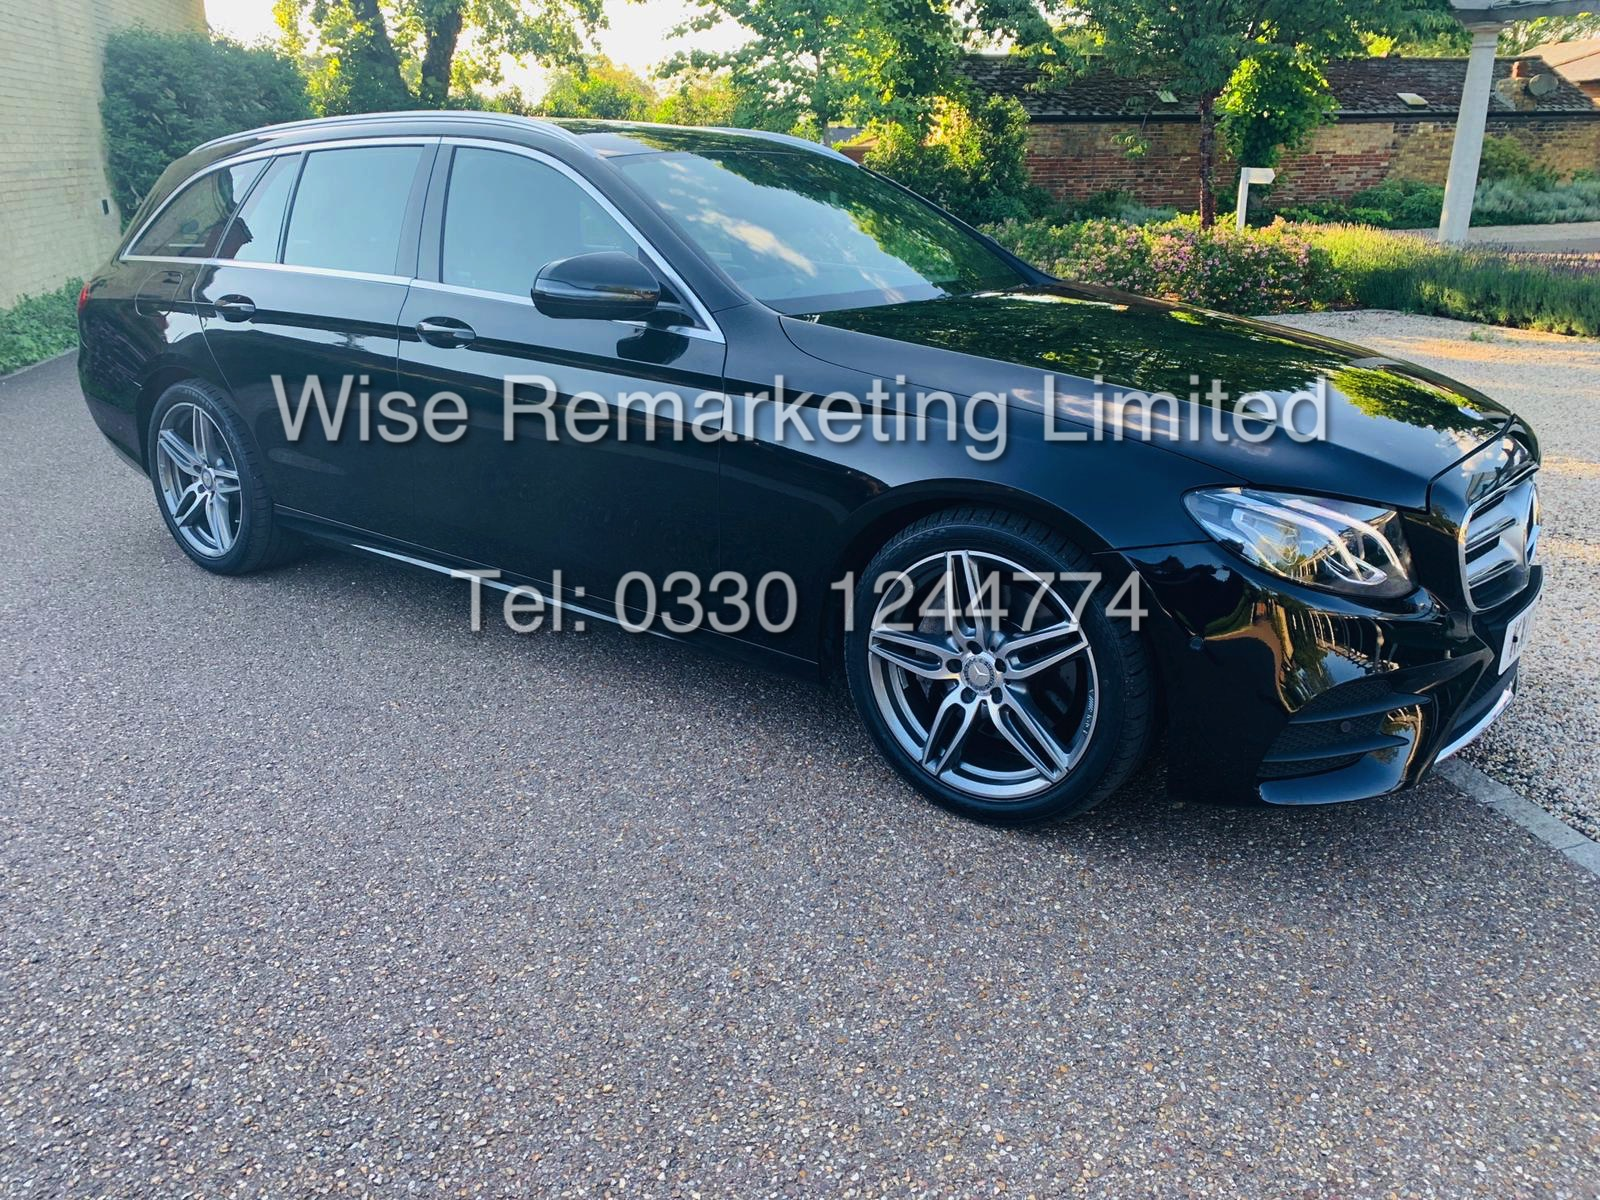 MERCEDES E CLASS ESTATE E220D AMG LINE 2017 / 9G -TRONIC / *LOW MILES* / 1 OWNER - Image 9 of 42